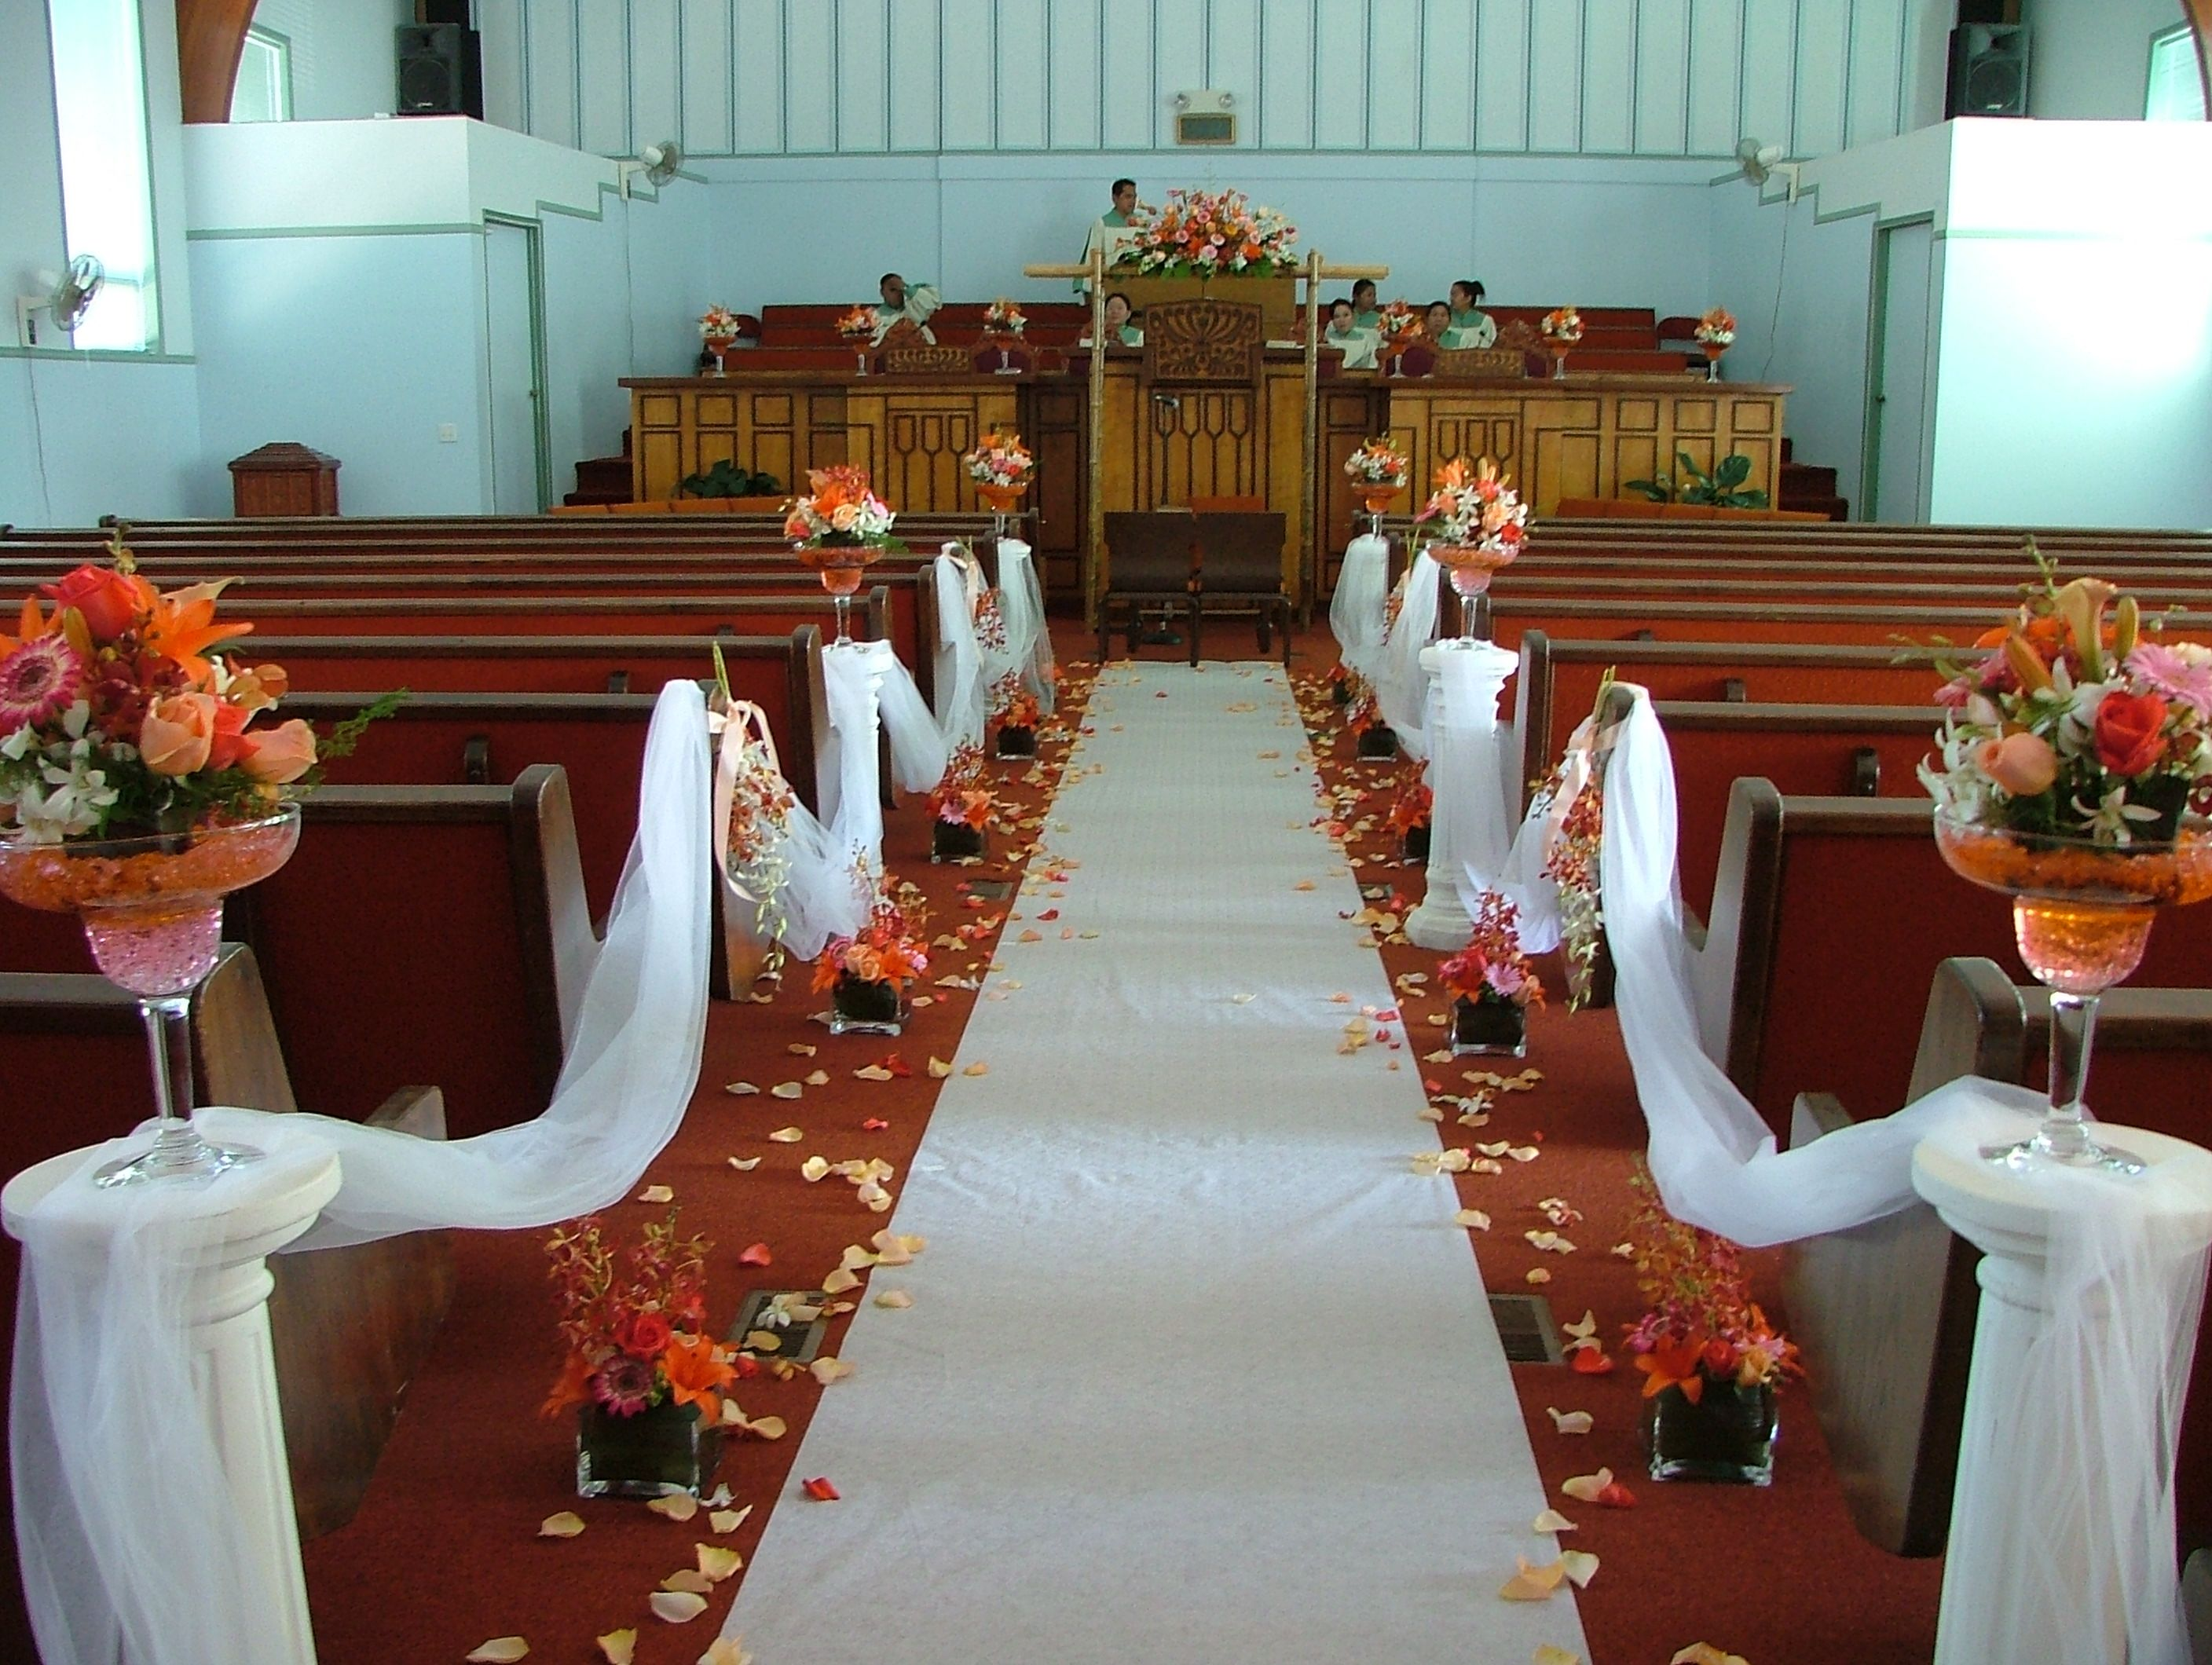 Of Wedding Decorations In Church Wedding Decor Church Wedding Decoration Ideas Gallery Wedding